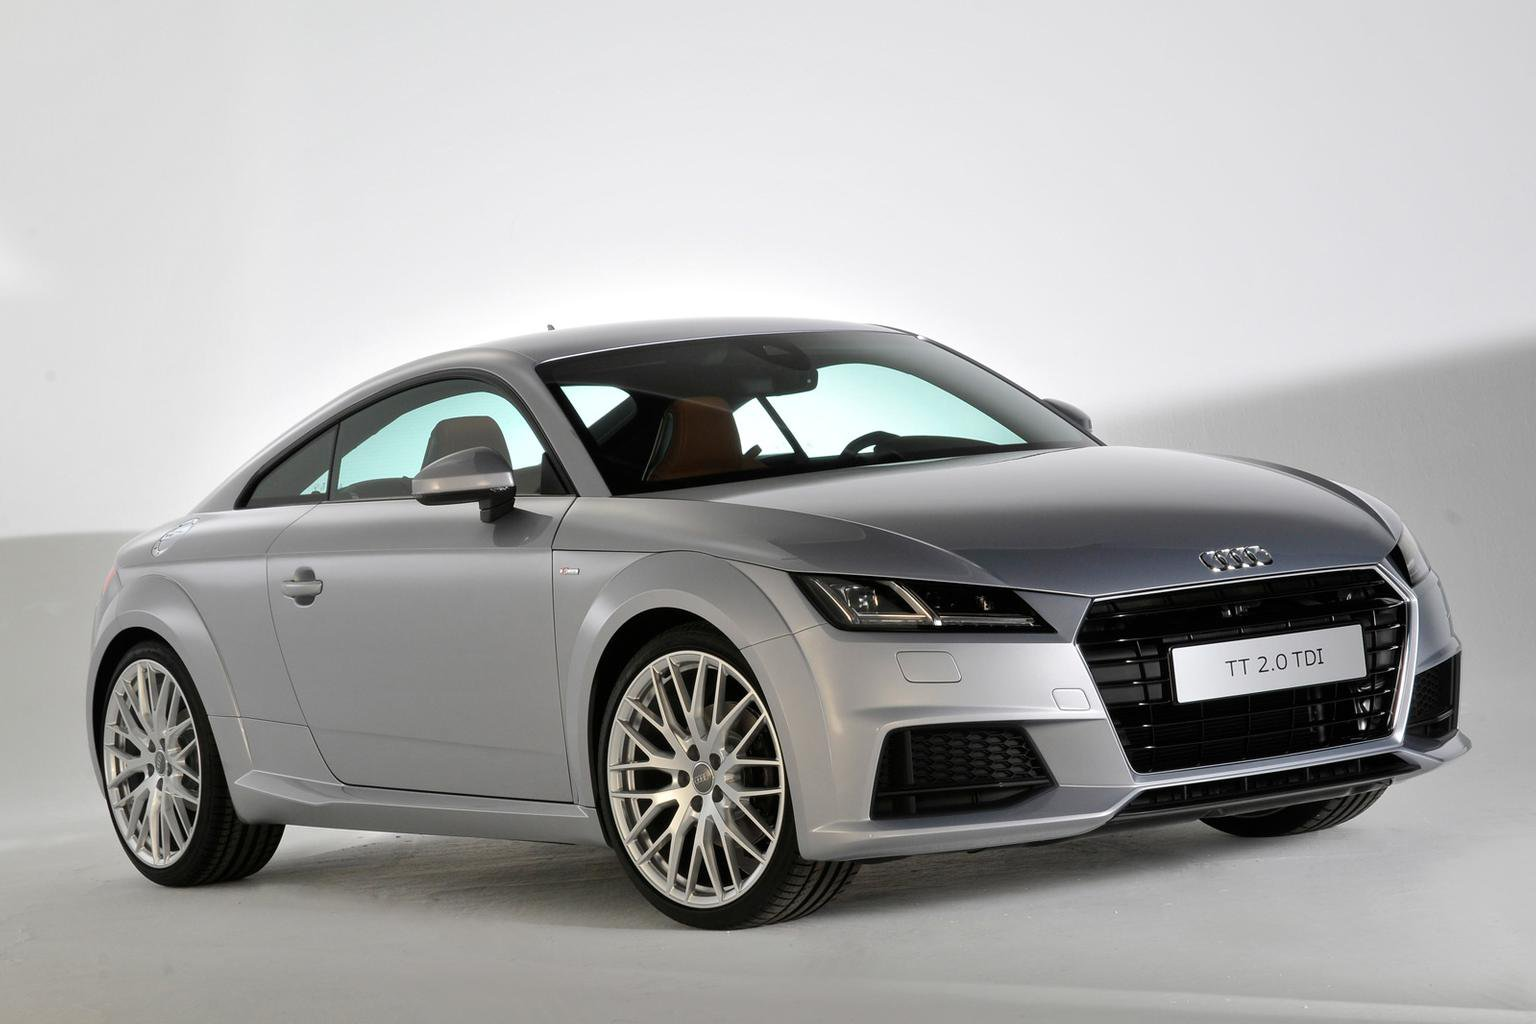 Exclusive: more 2014 Audi TT photos and video